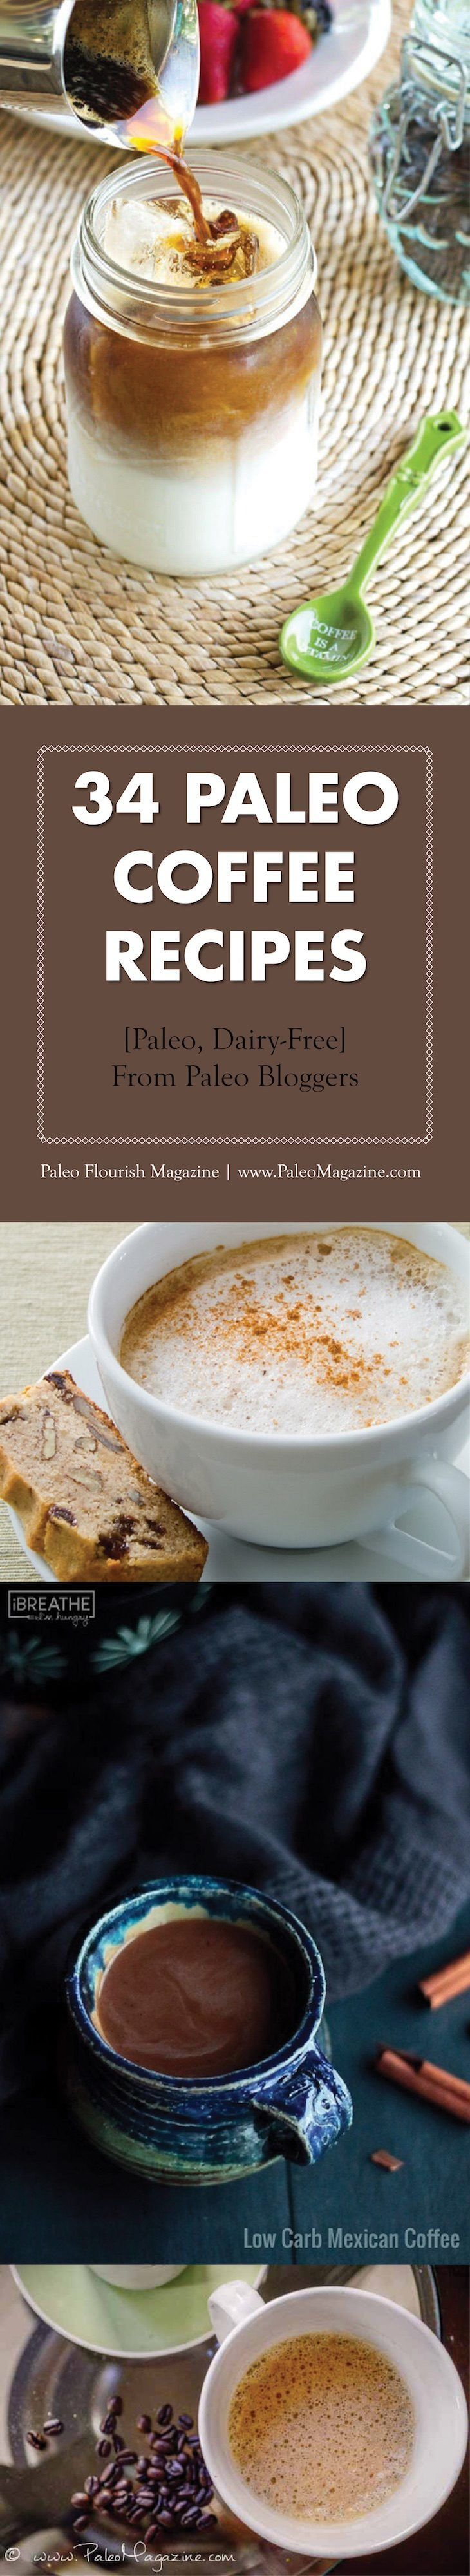 35 Paleo Coffee Recipes #paleo #coffee #recipes http://paleomagazine.com/paleo-coffee-recipes